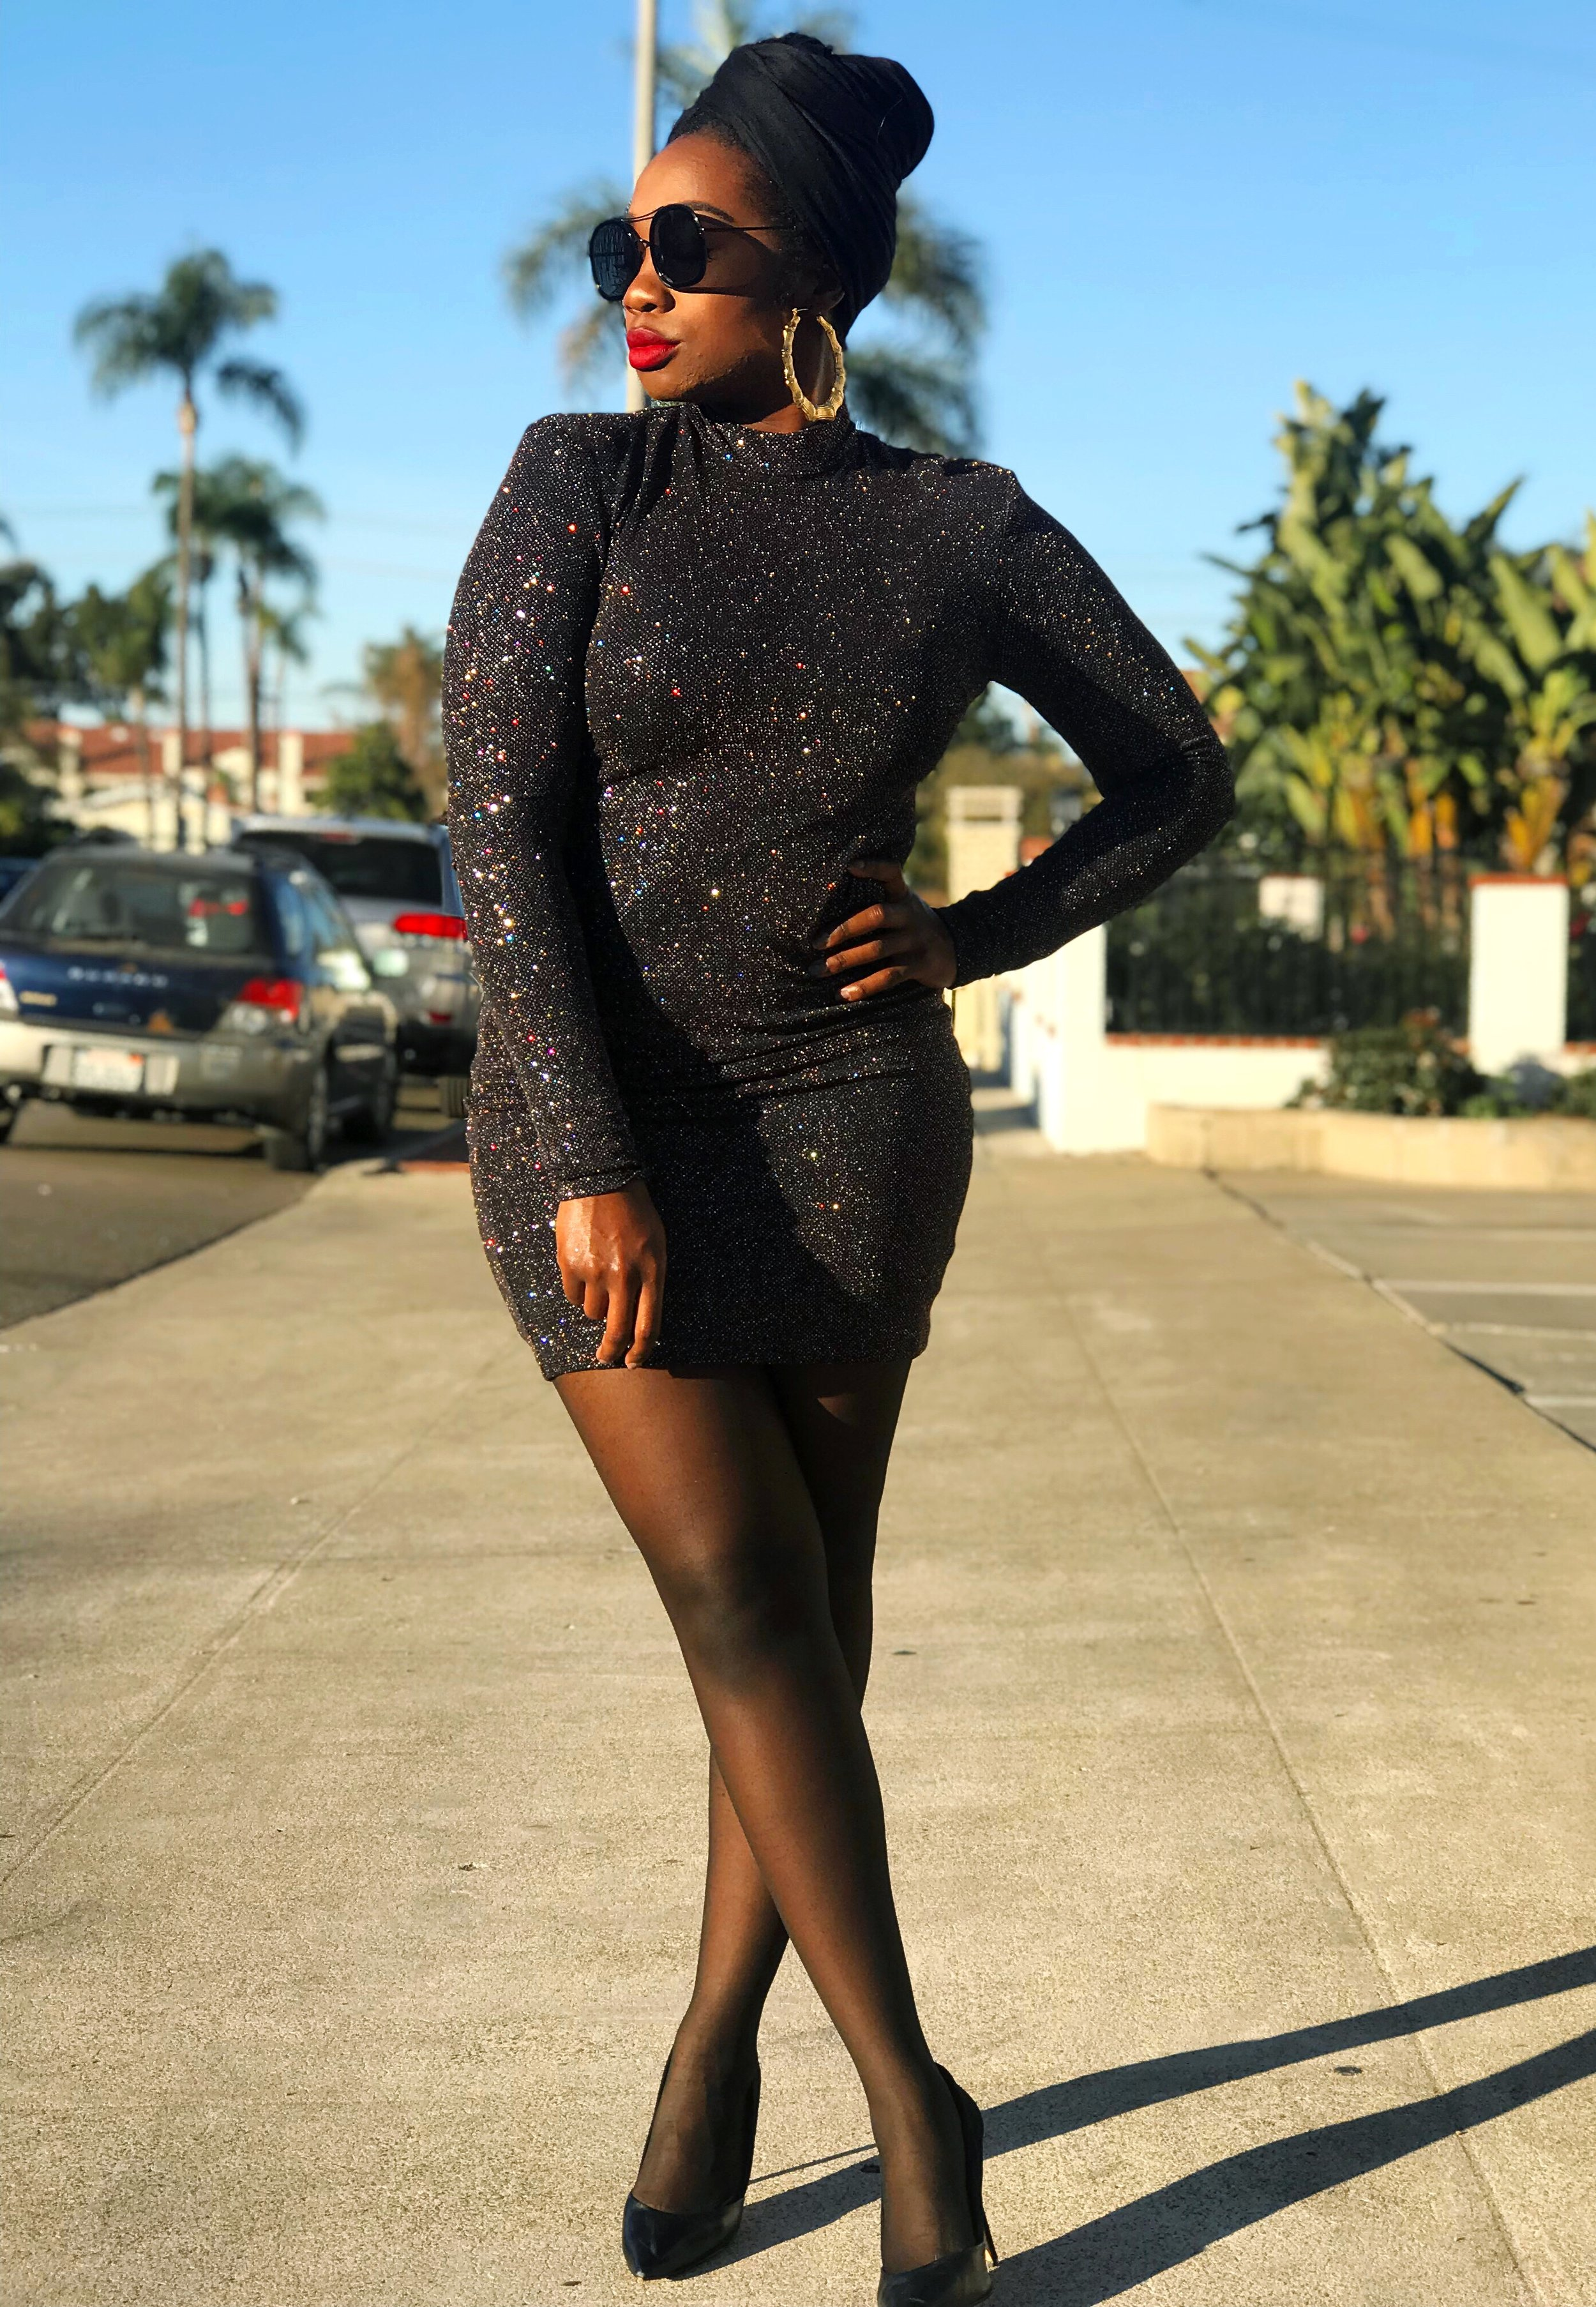 Femi wearing sparkly New Year's Even Inspiration dress - Wrap Queen